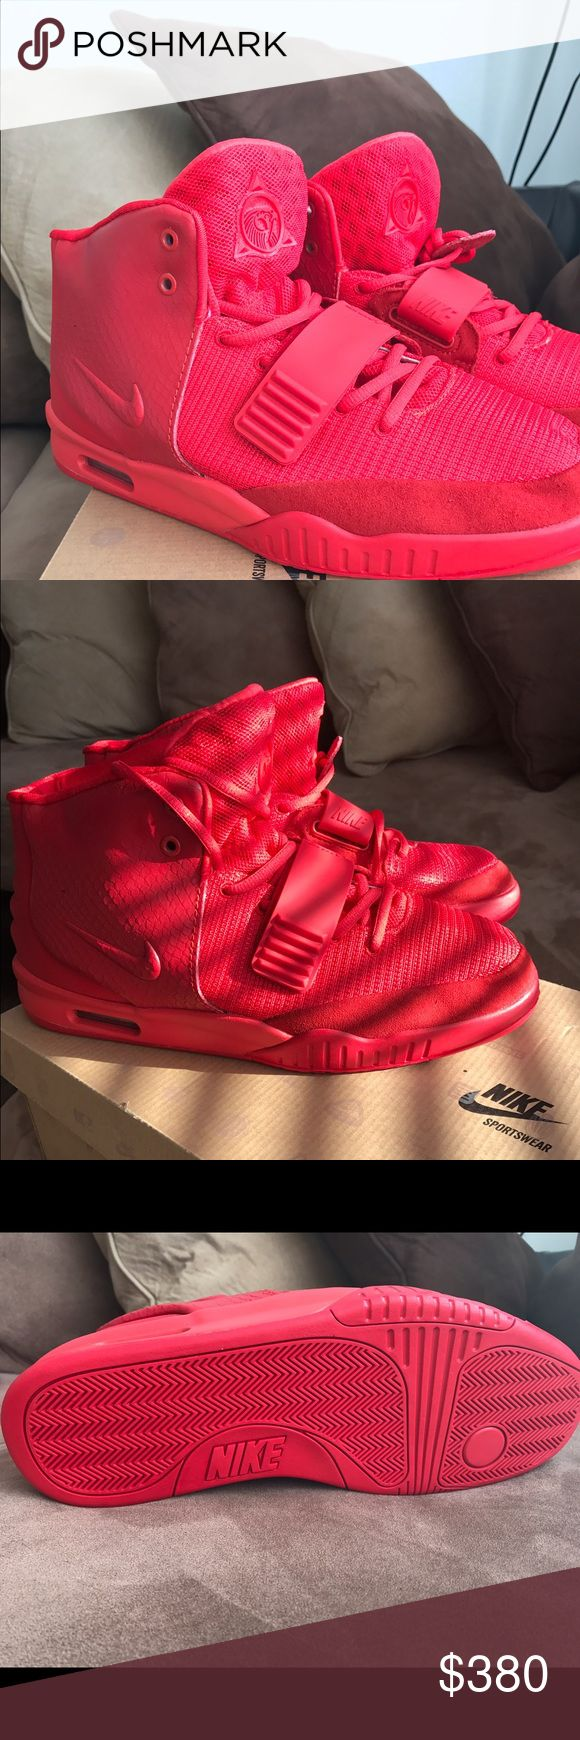 Nike Air Yeezy Red October | Air yeezy red october, Yeezy red october and Air  yeezy